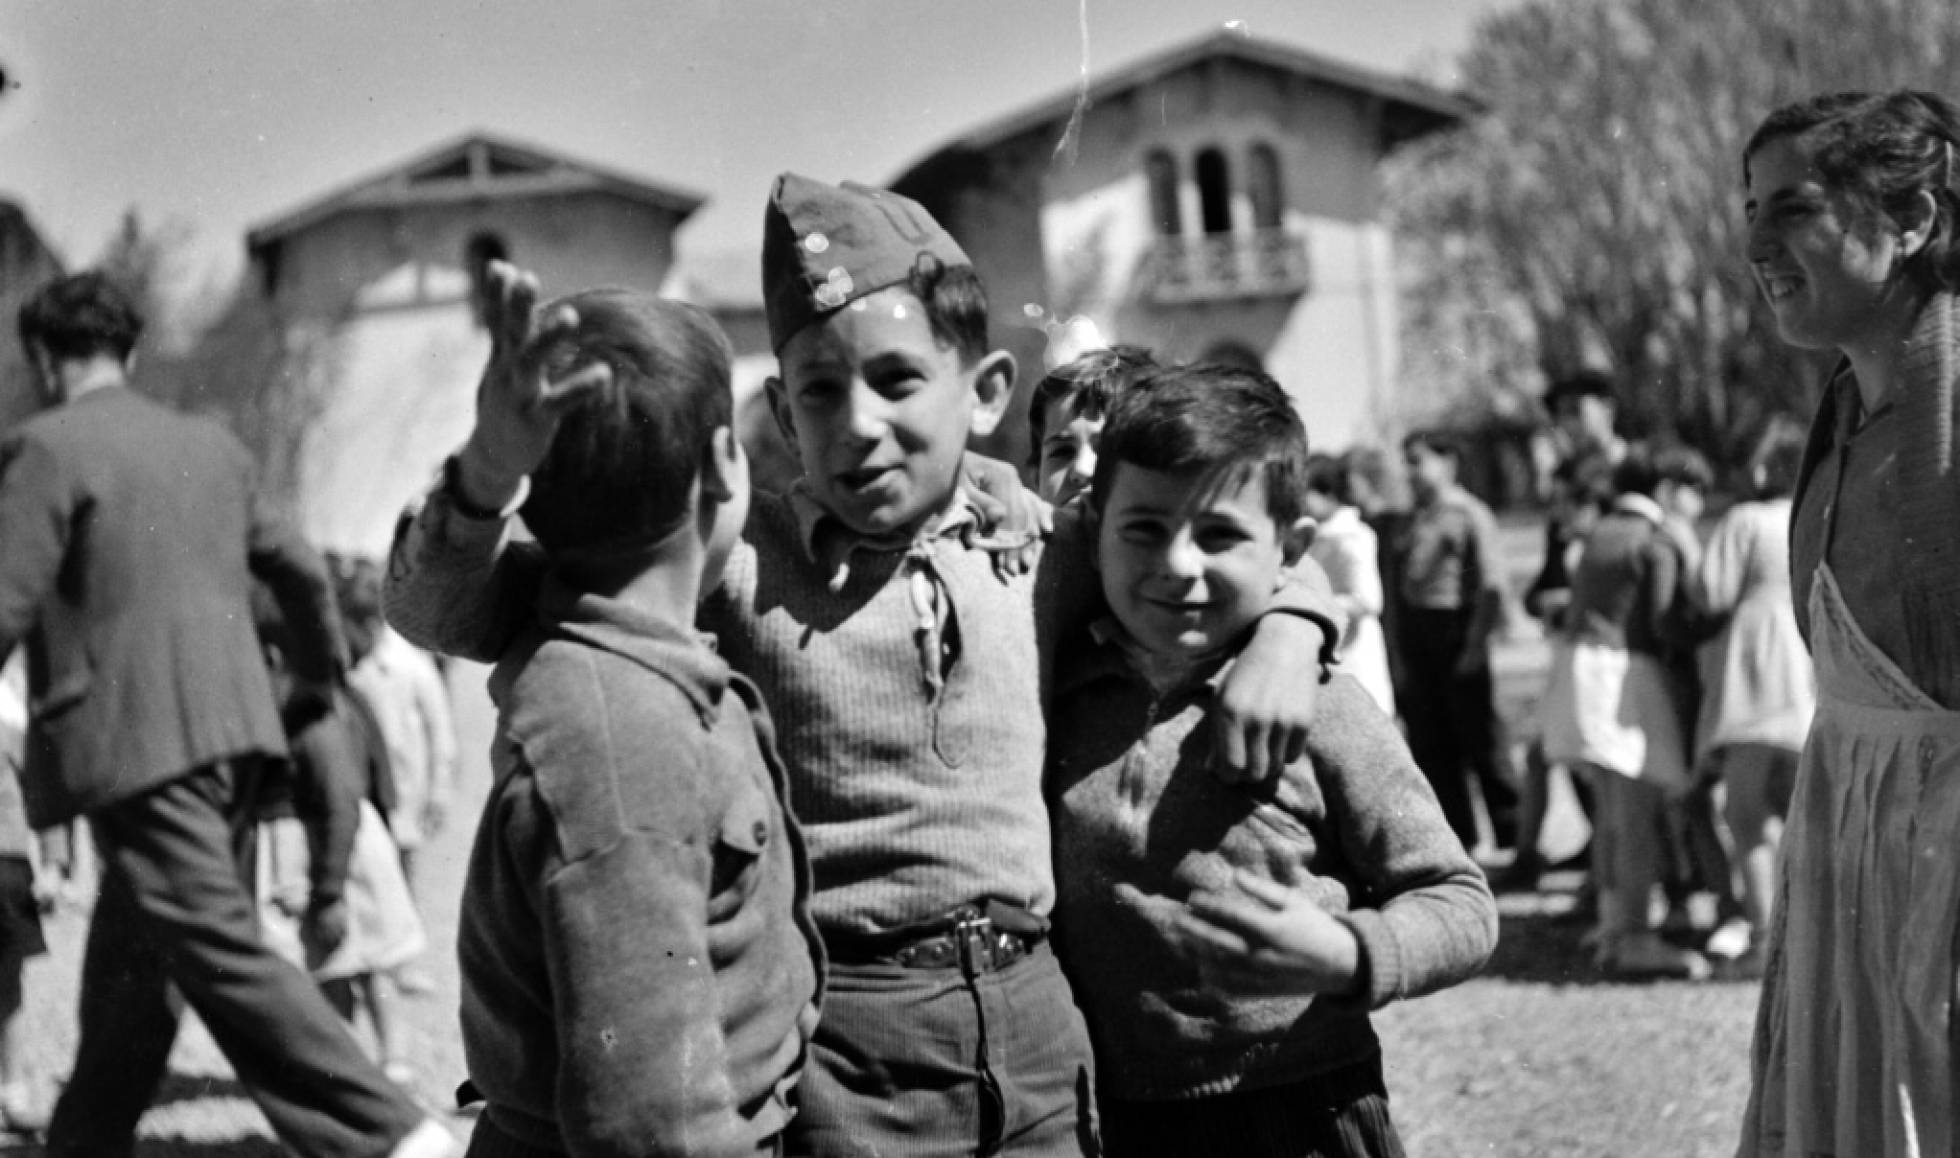 Lost Archive Of Spanish Civil War Photos Discovered After